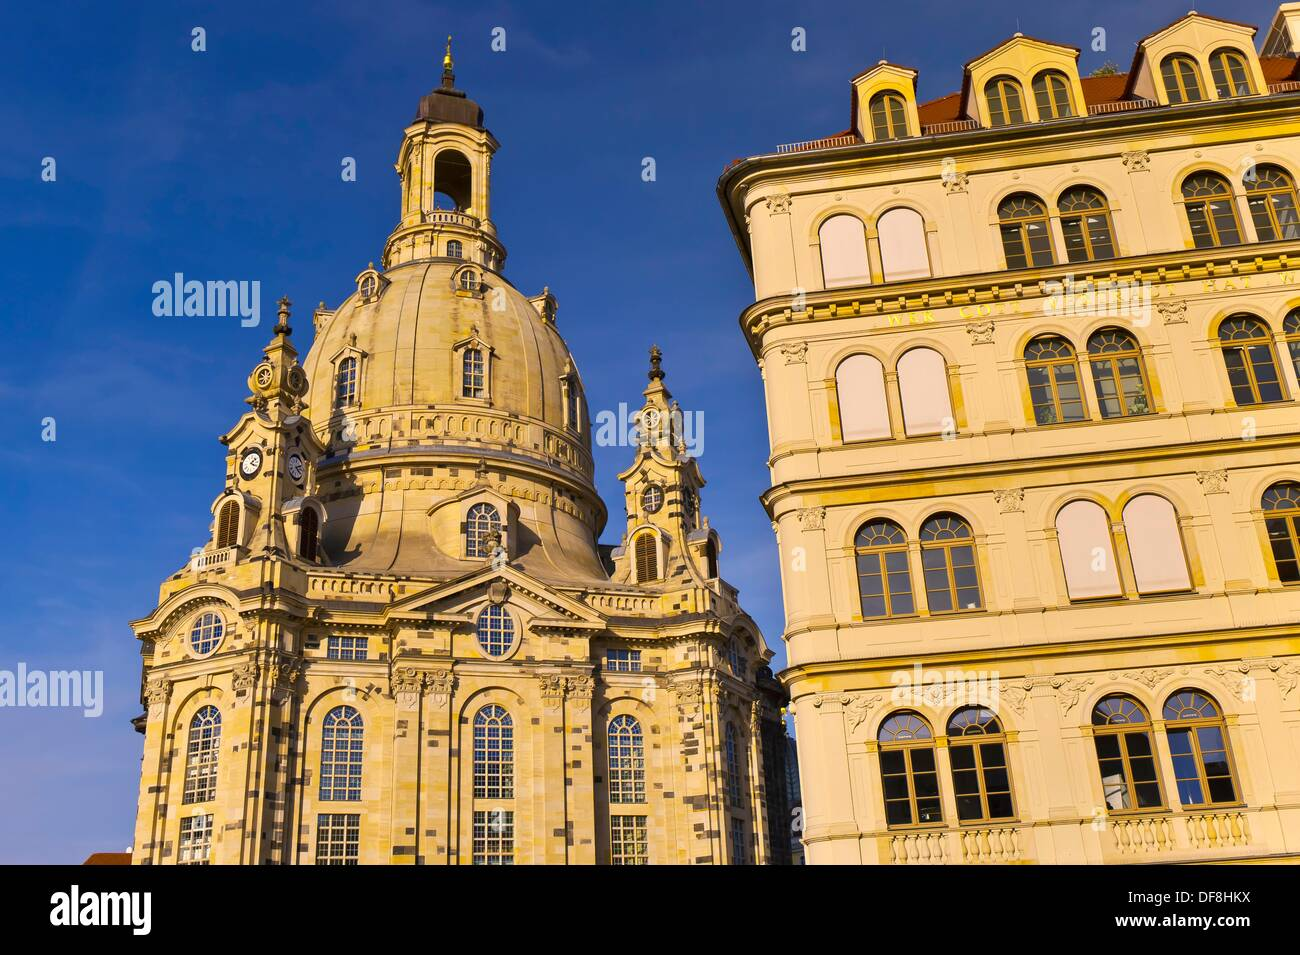 Frauenkirche church and the Neumarkt New Market district, Dresden, Saxony, Germany Stock Photo